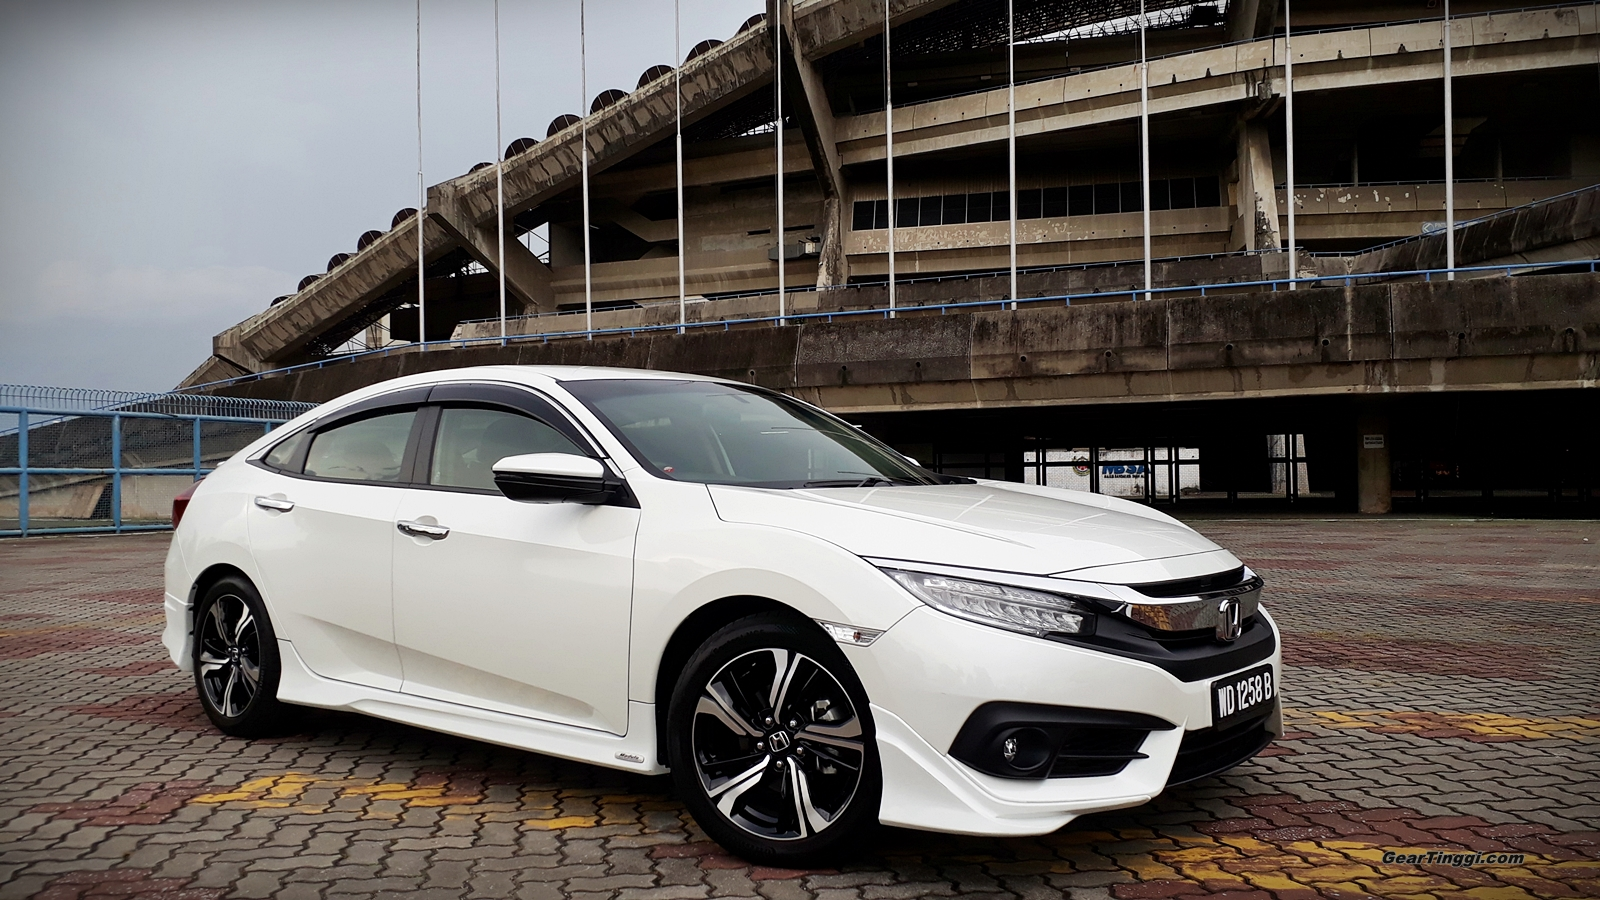 Honda Civic 1.5 VTEC Turbo 2017